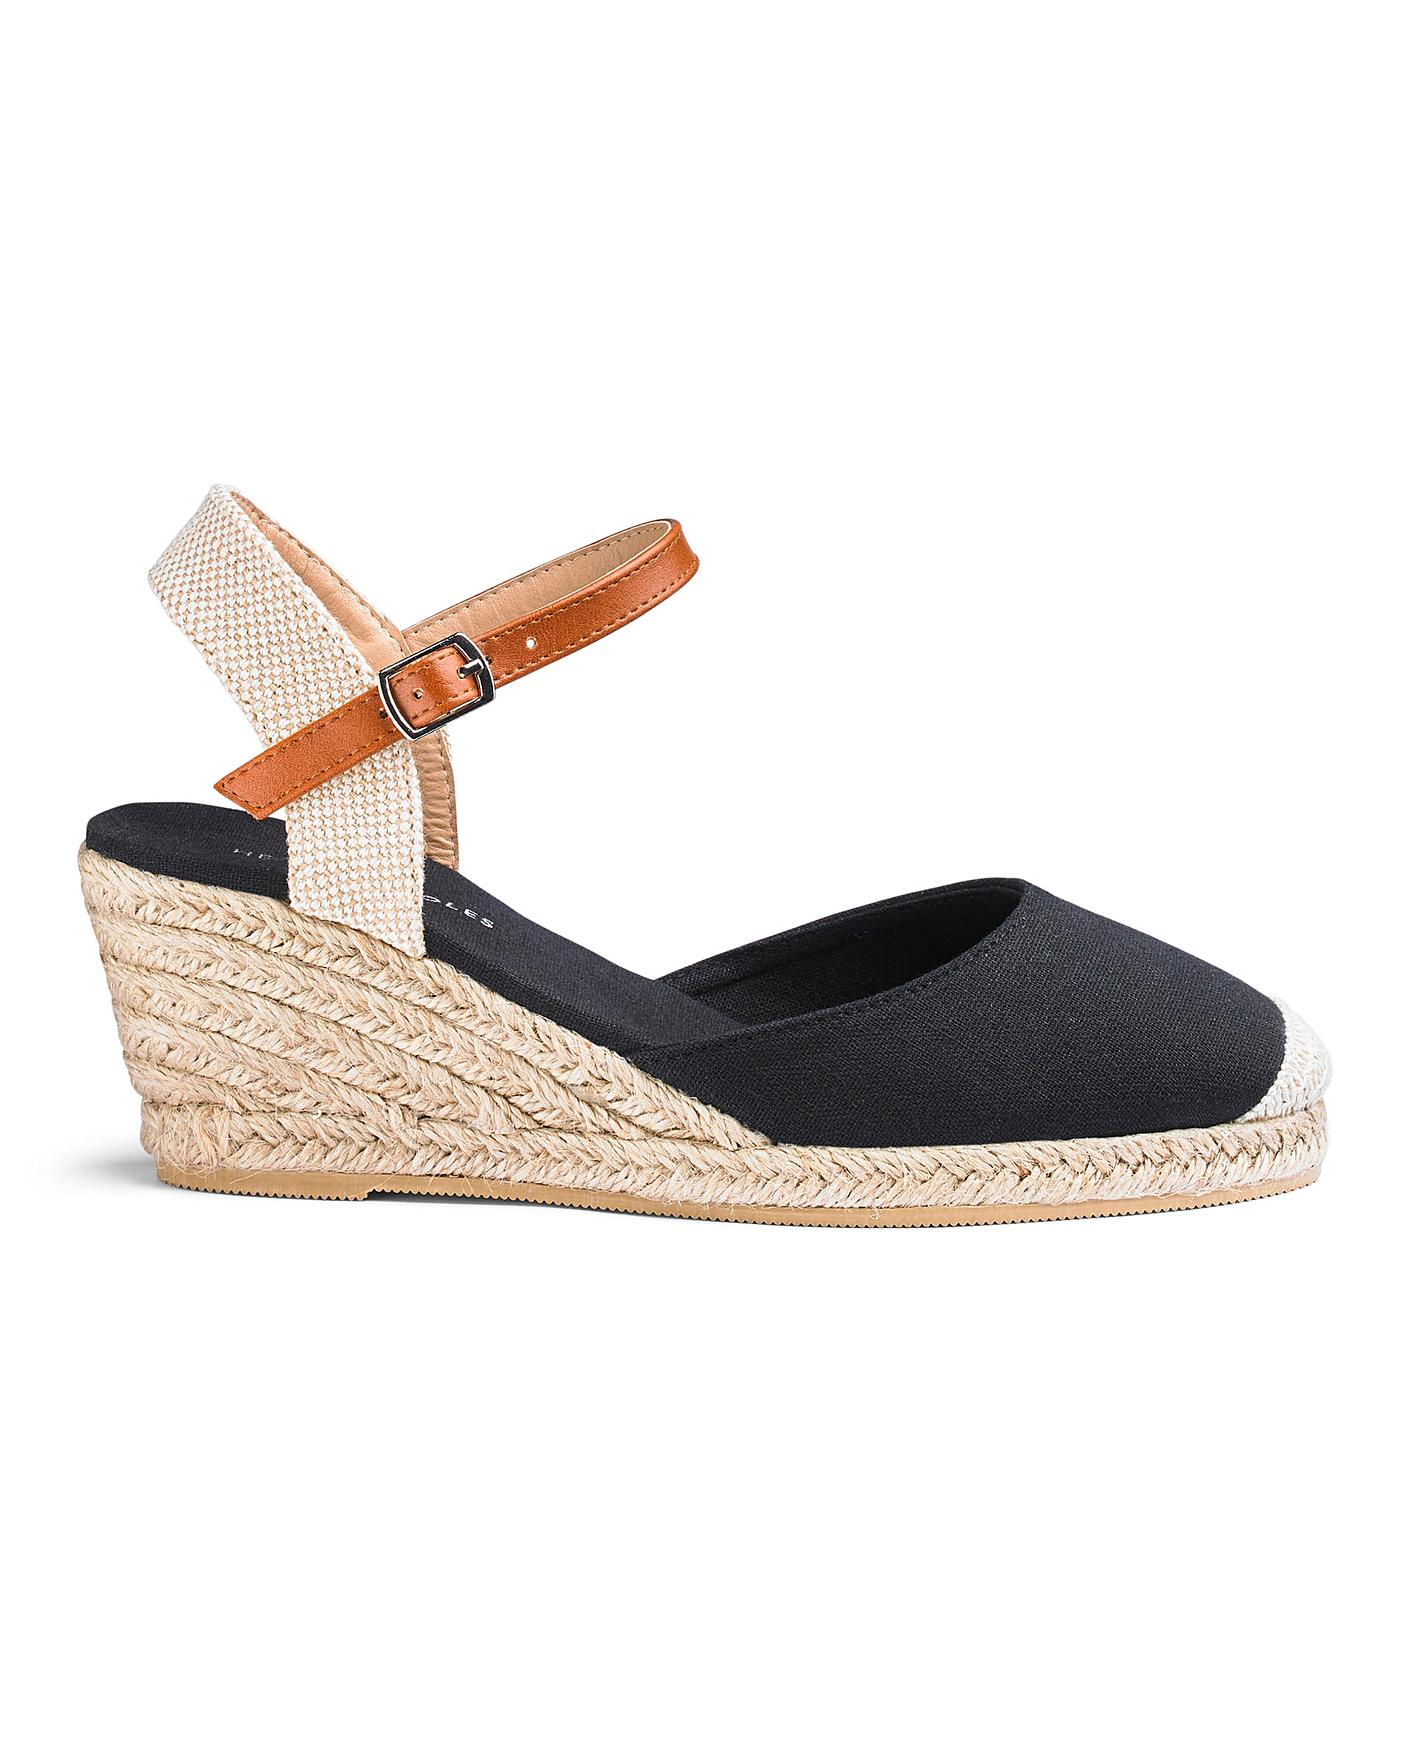 wholesale online official supplier running shoes Espadrille Wedge Sandals EEE Fit | J D Williams